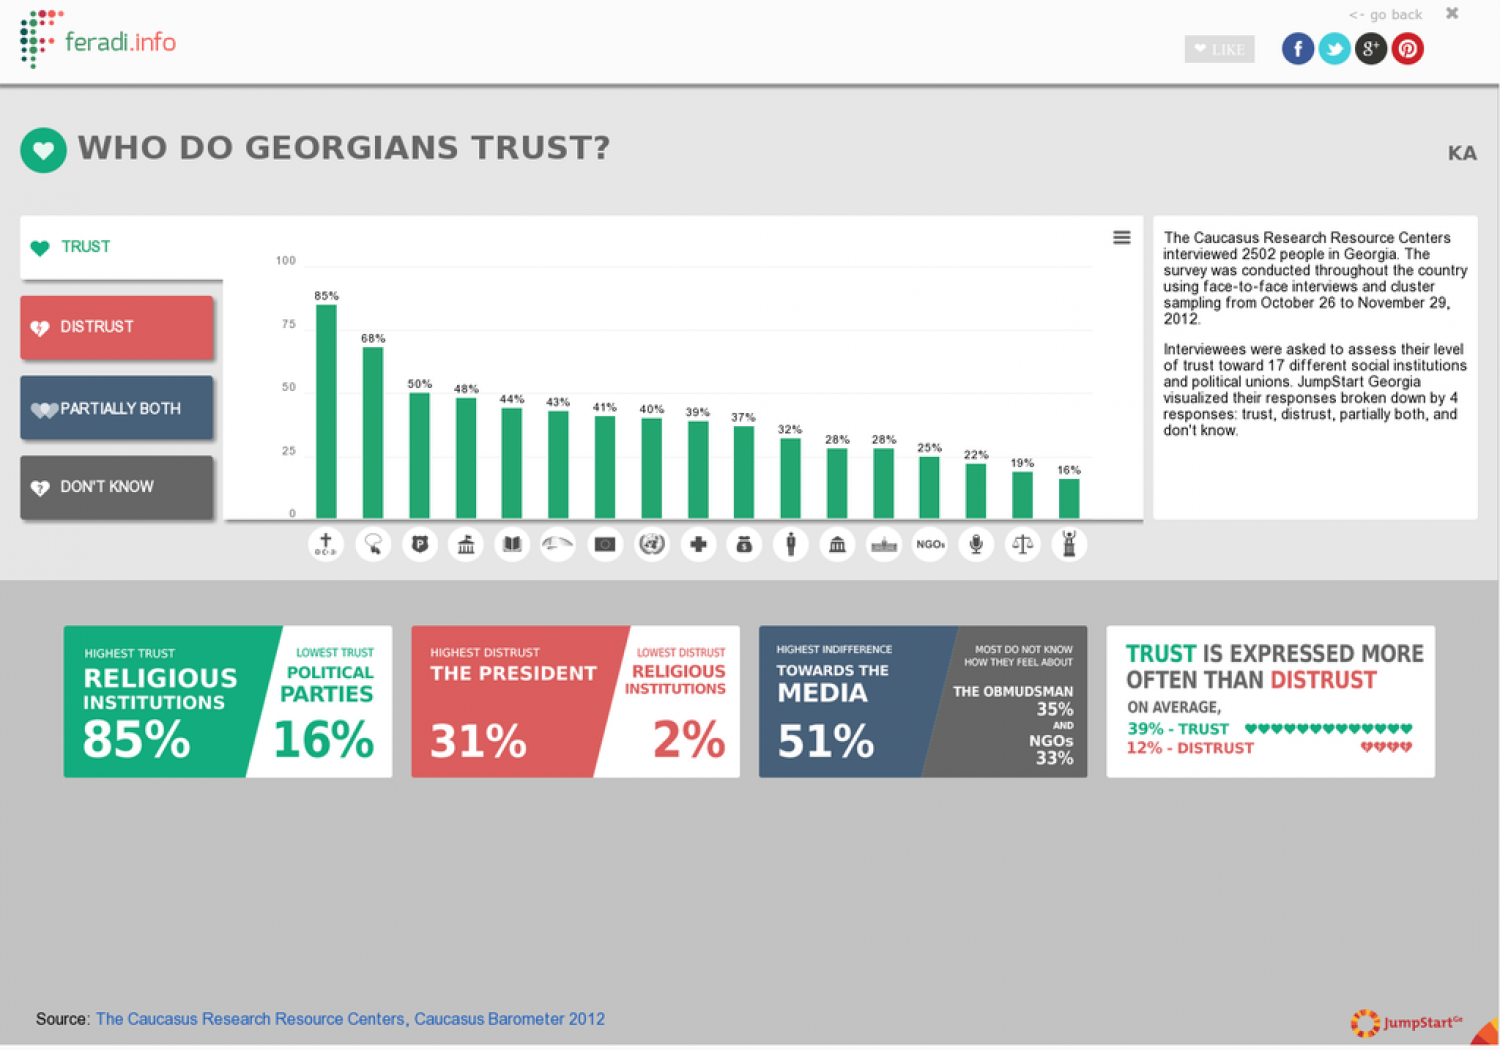 WHO DO GEORGIANS TRUST? Infographic